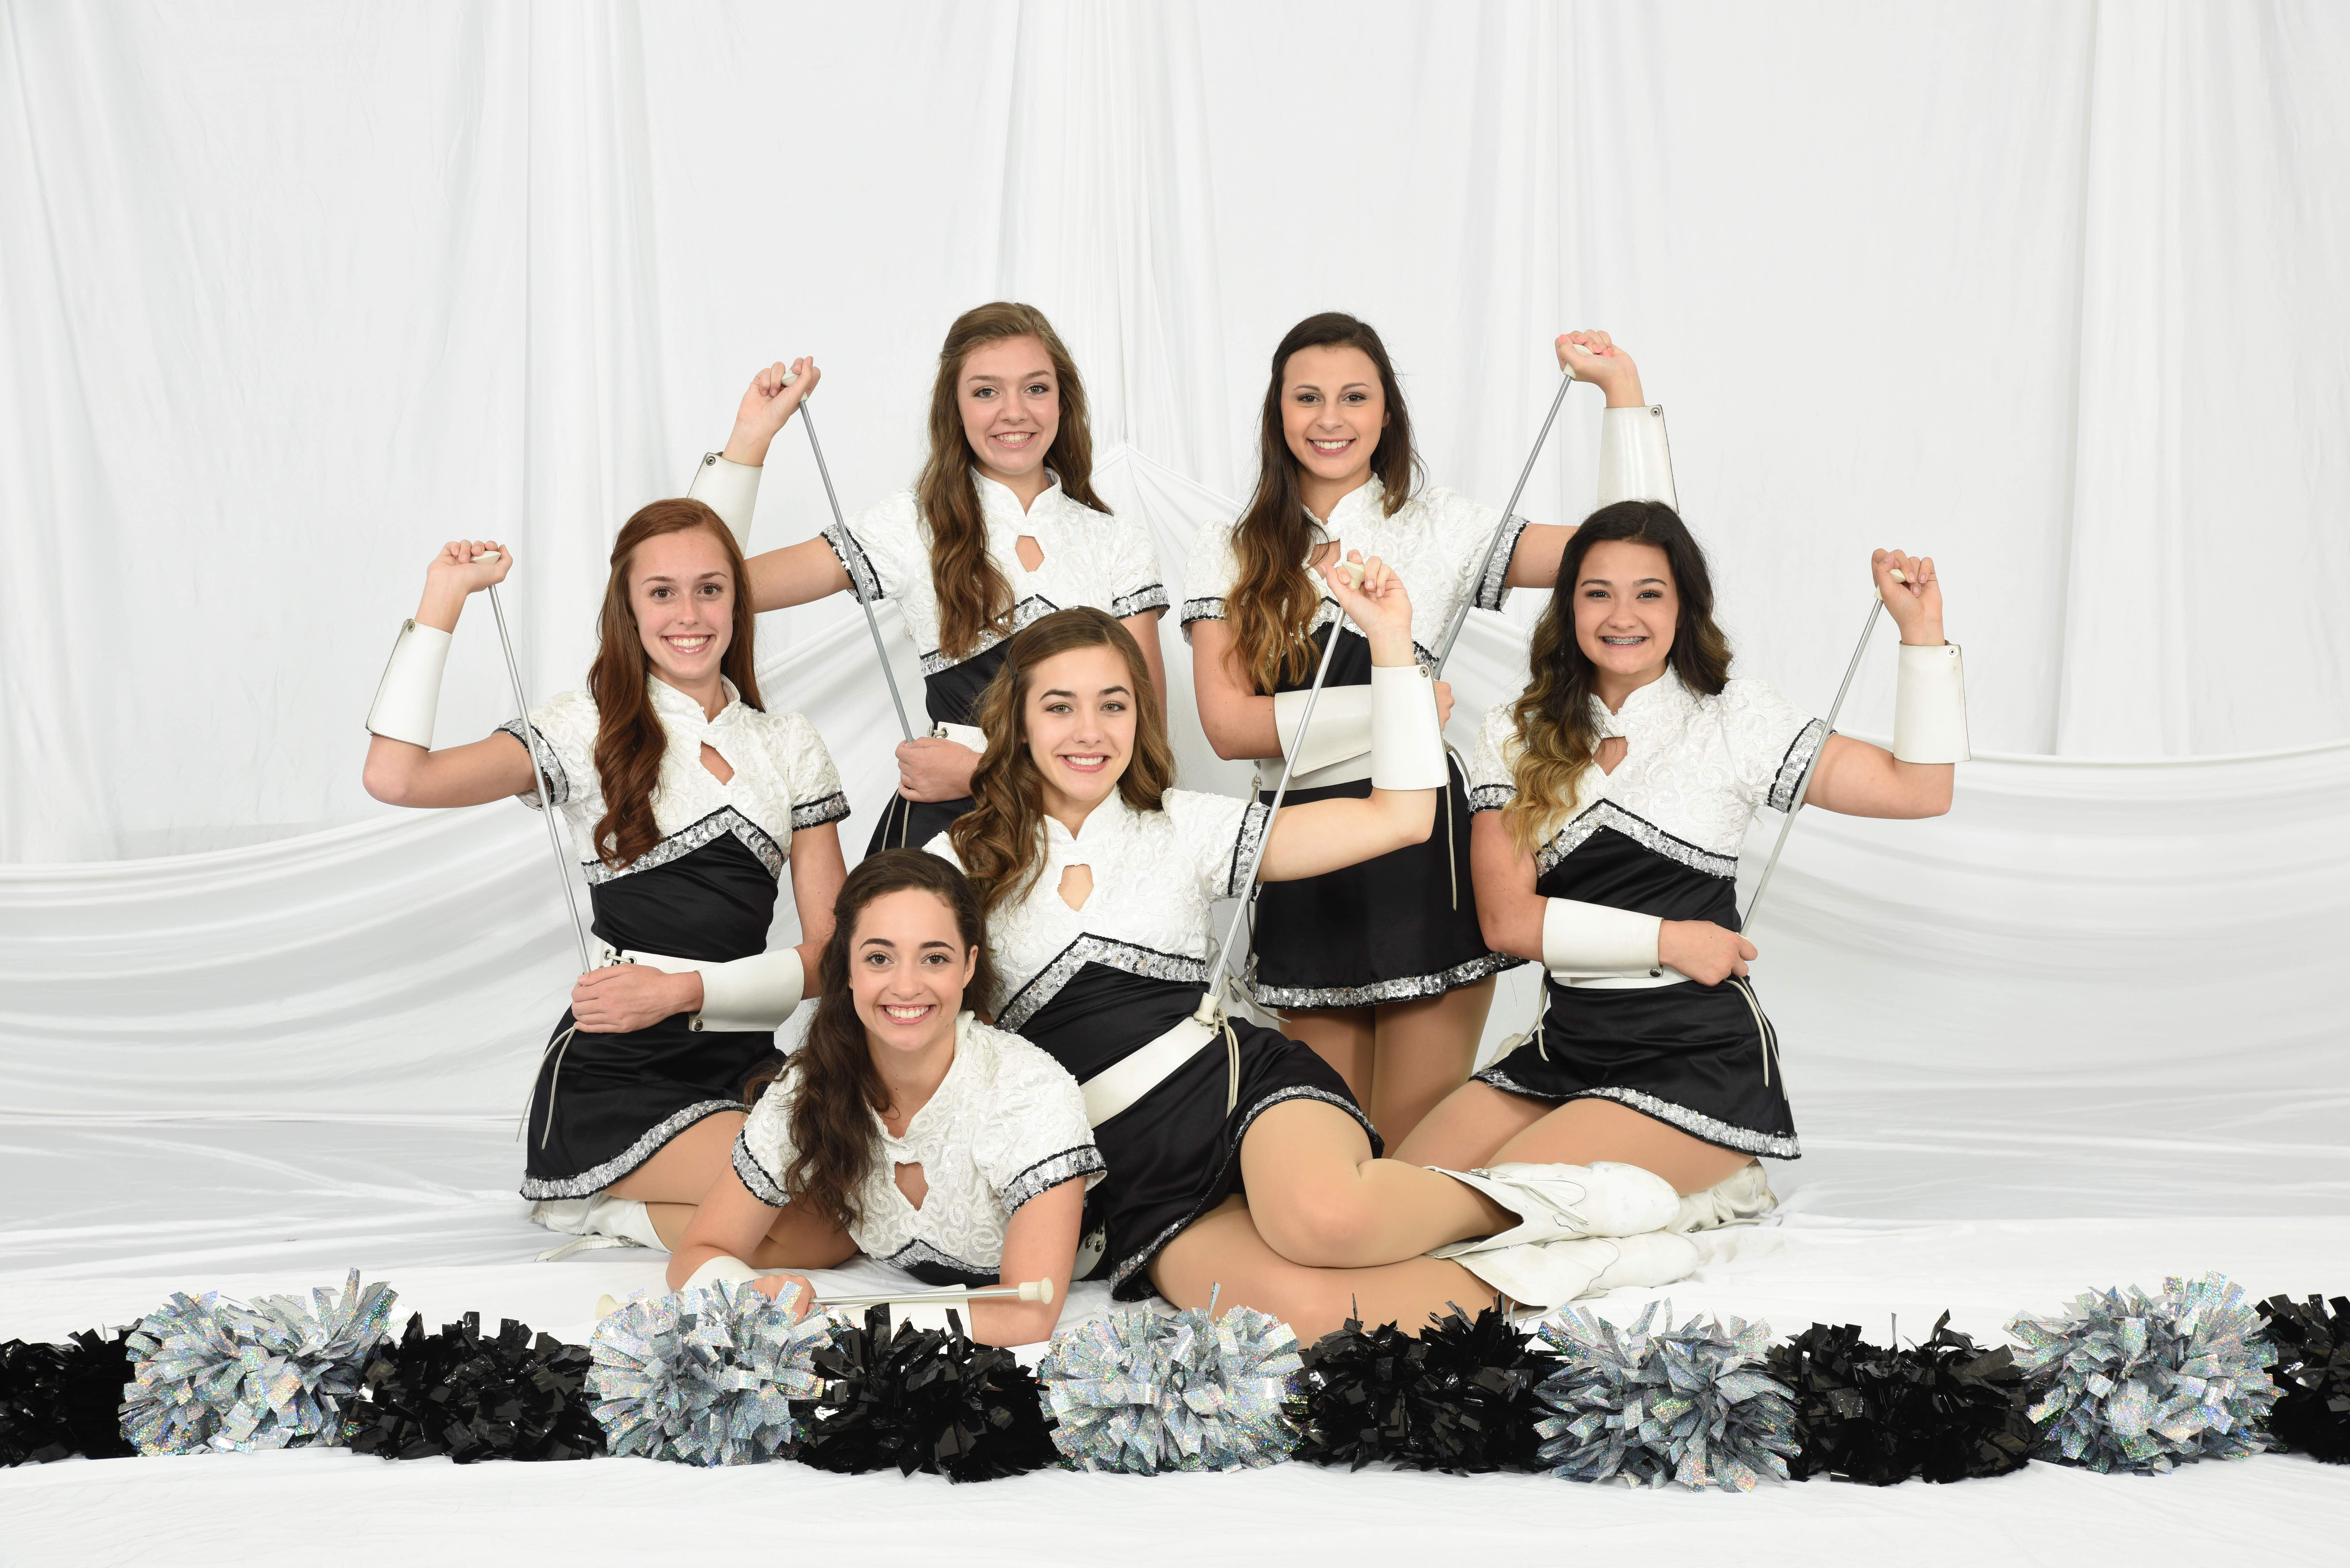 Tags Dance Teams New Members: About The Prancer Board And Squad Members